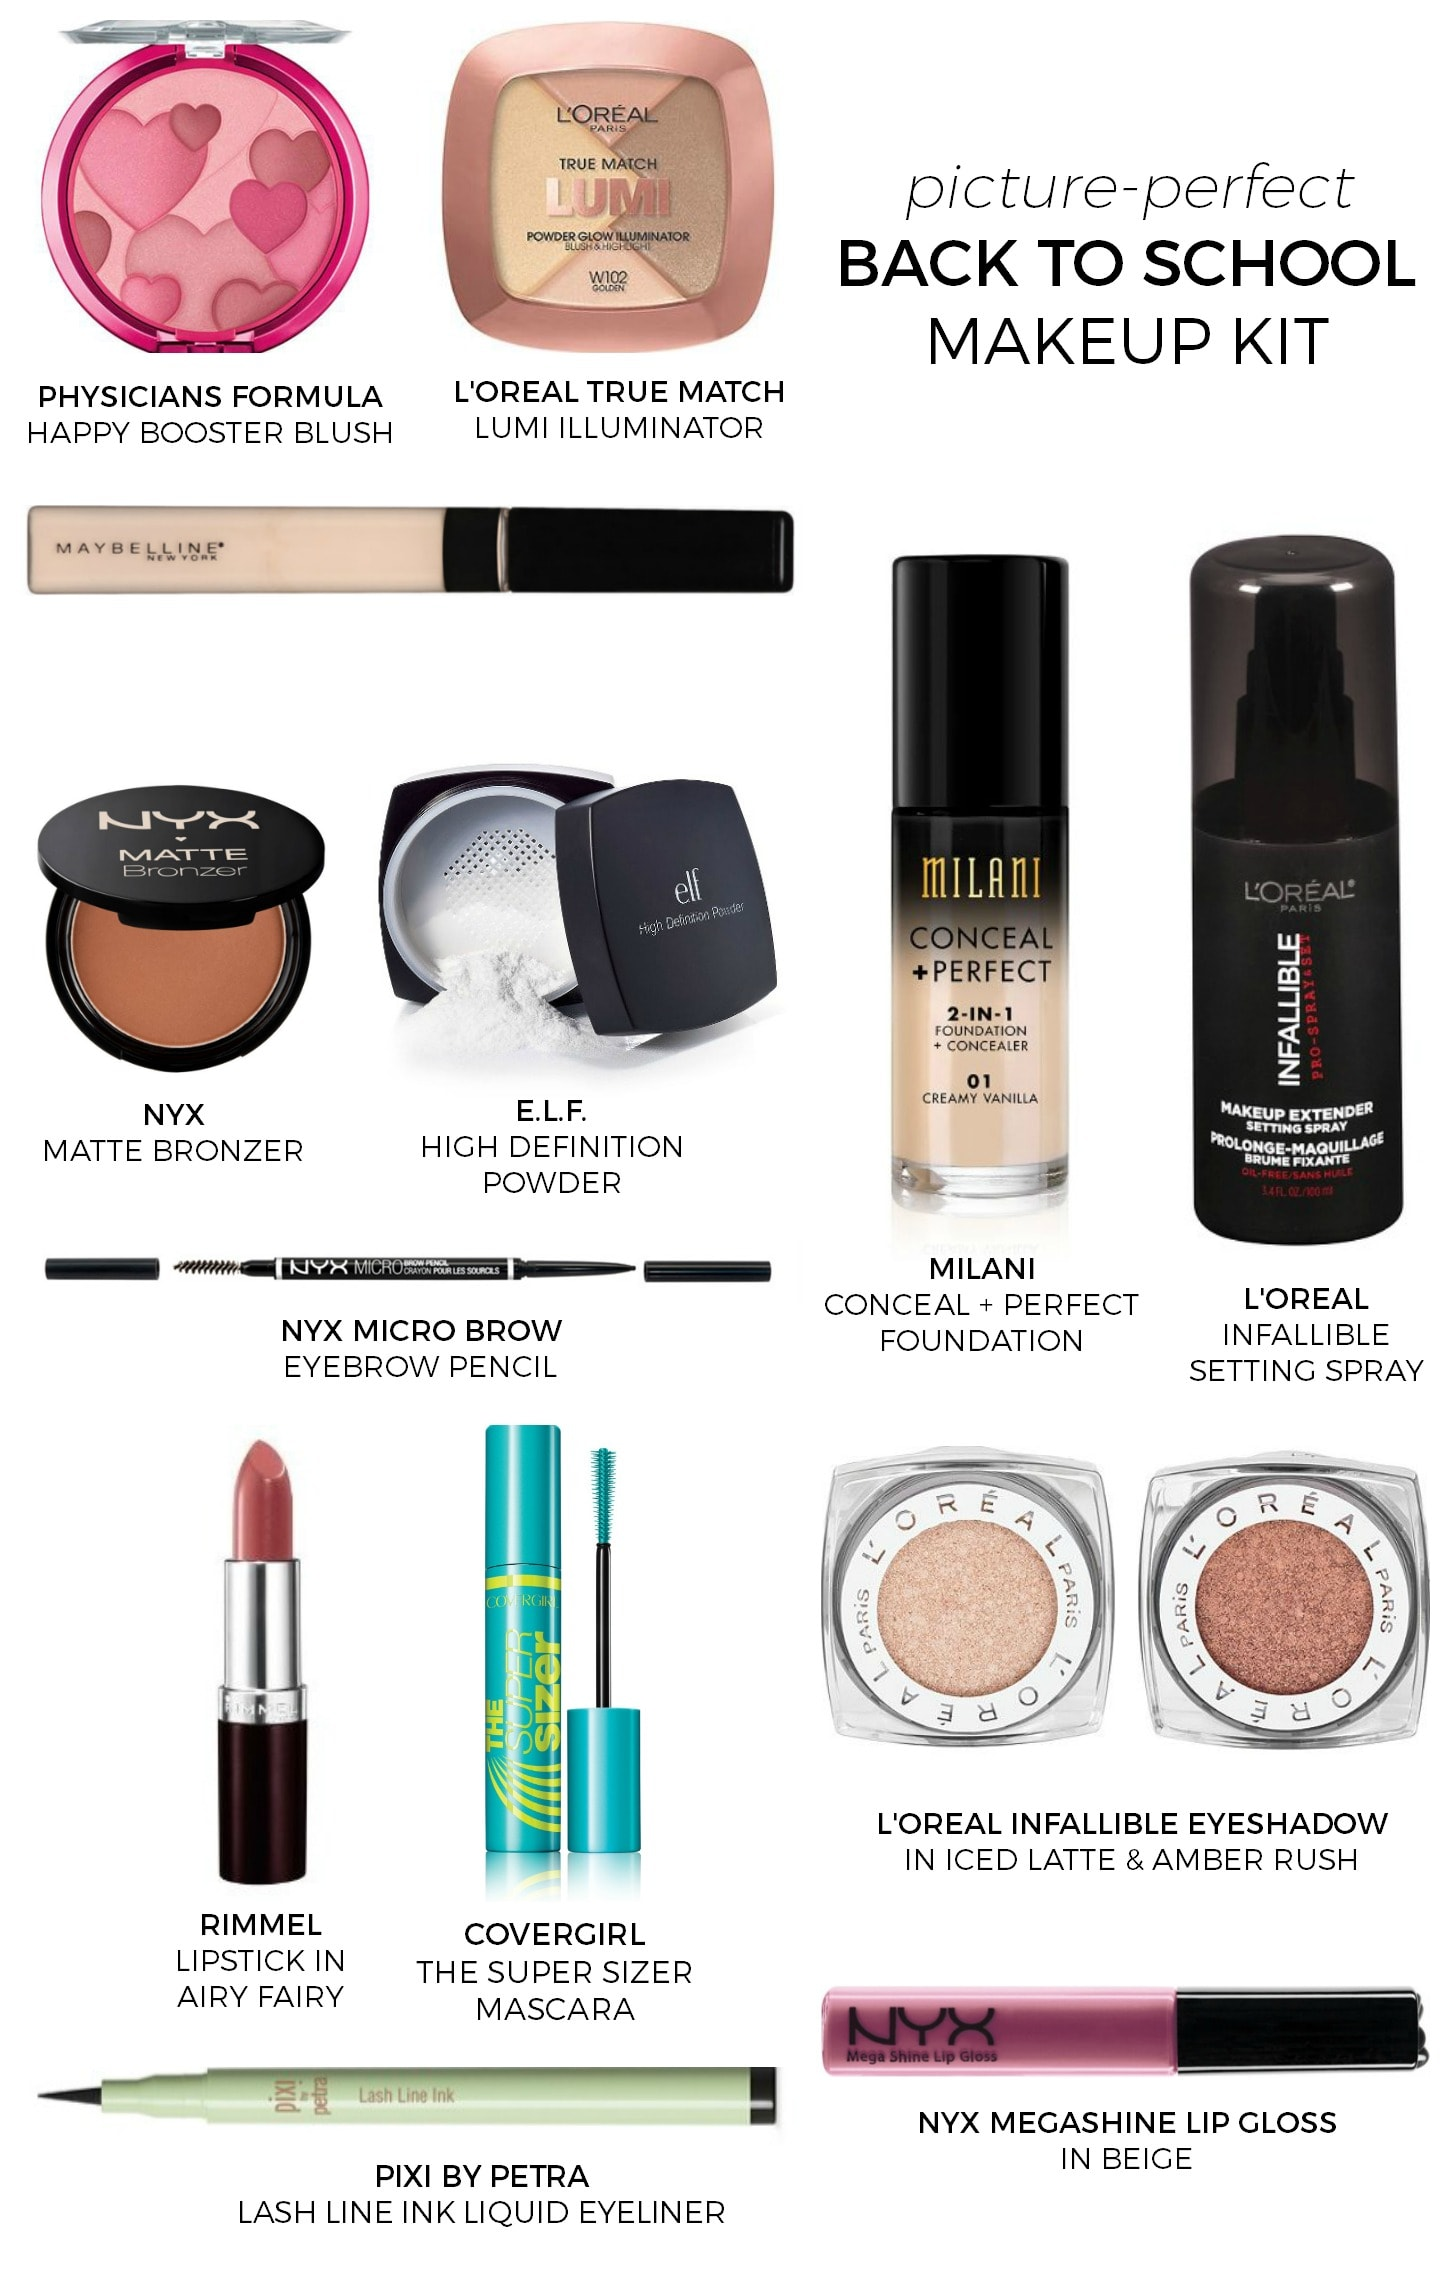 picture-perfect-back-to-school-makeup-kit-for-